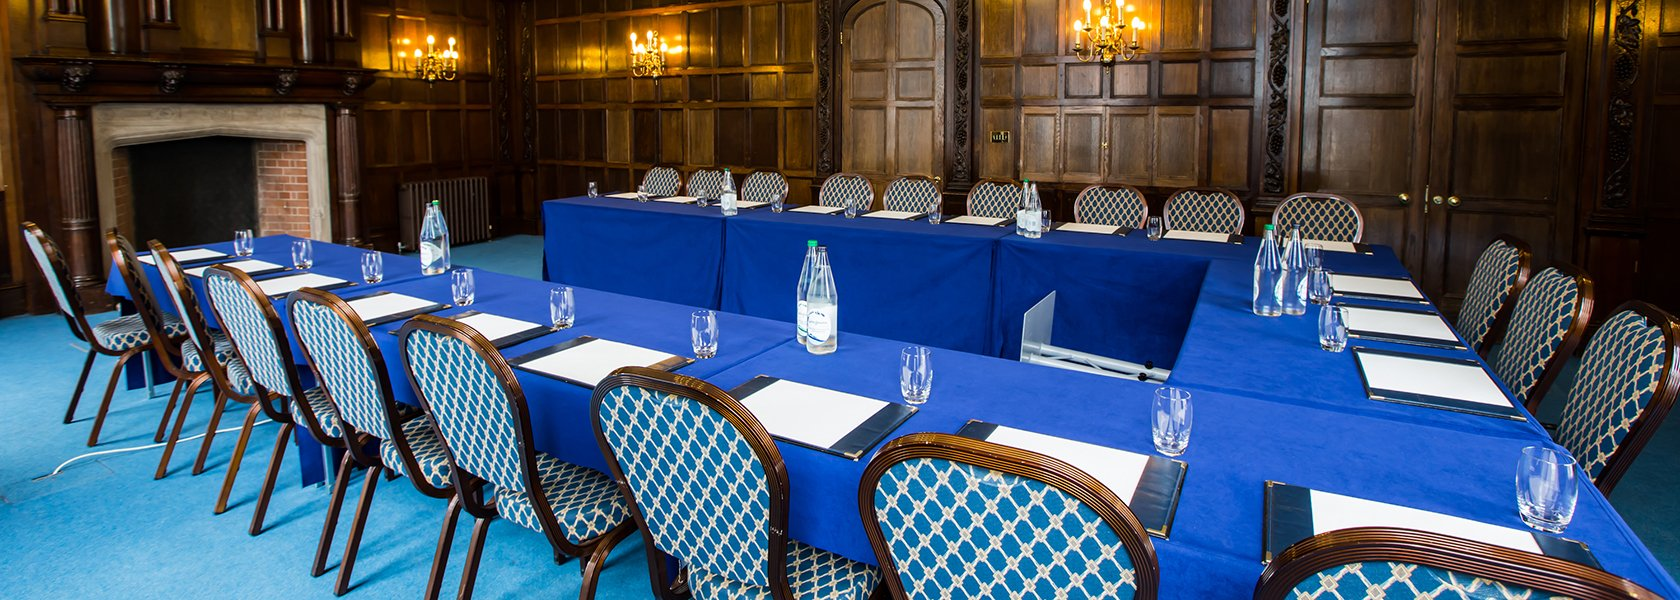 Meeting day delegate rates at 58 Prince's Gate